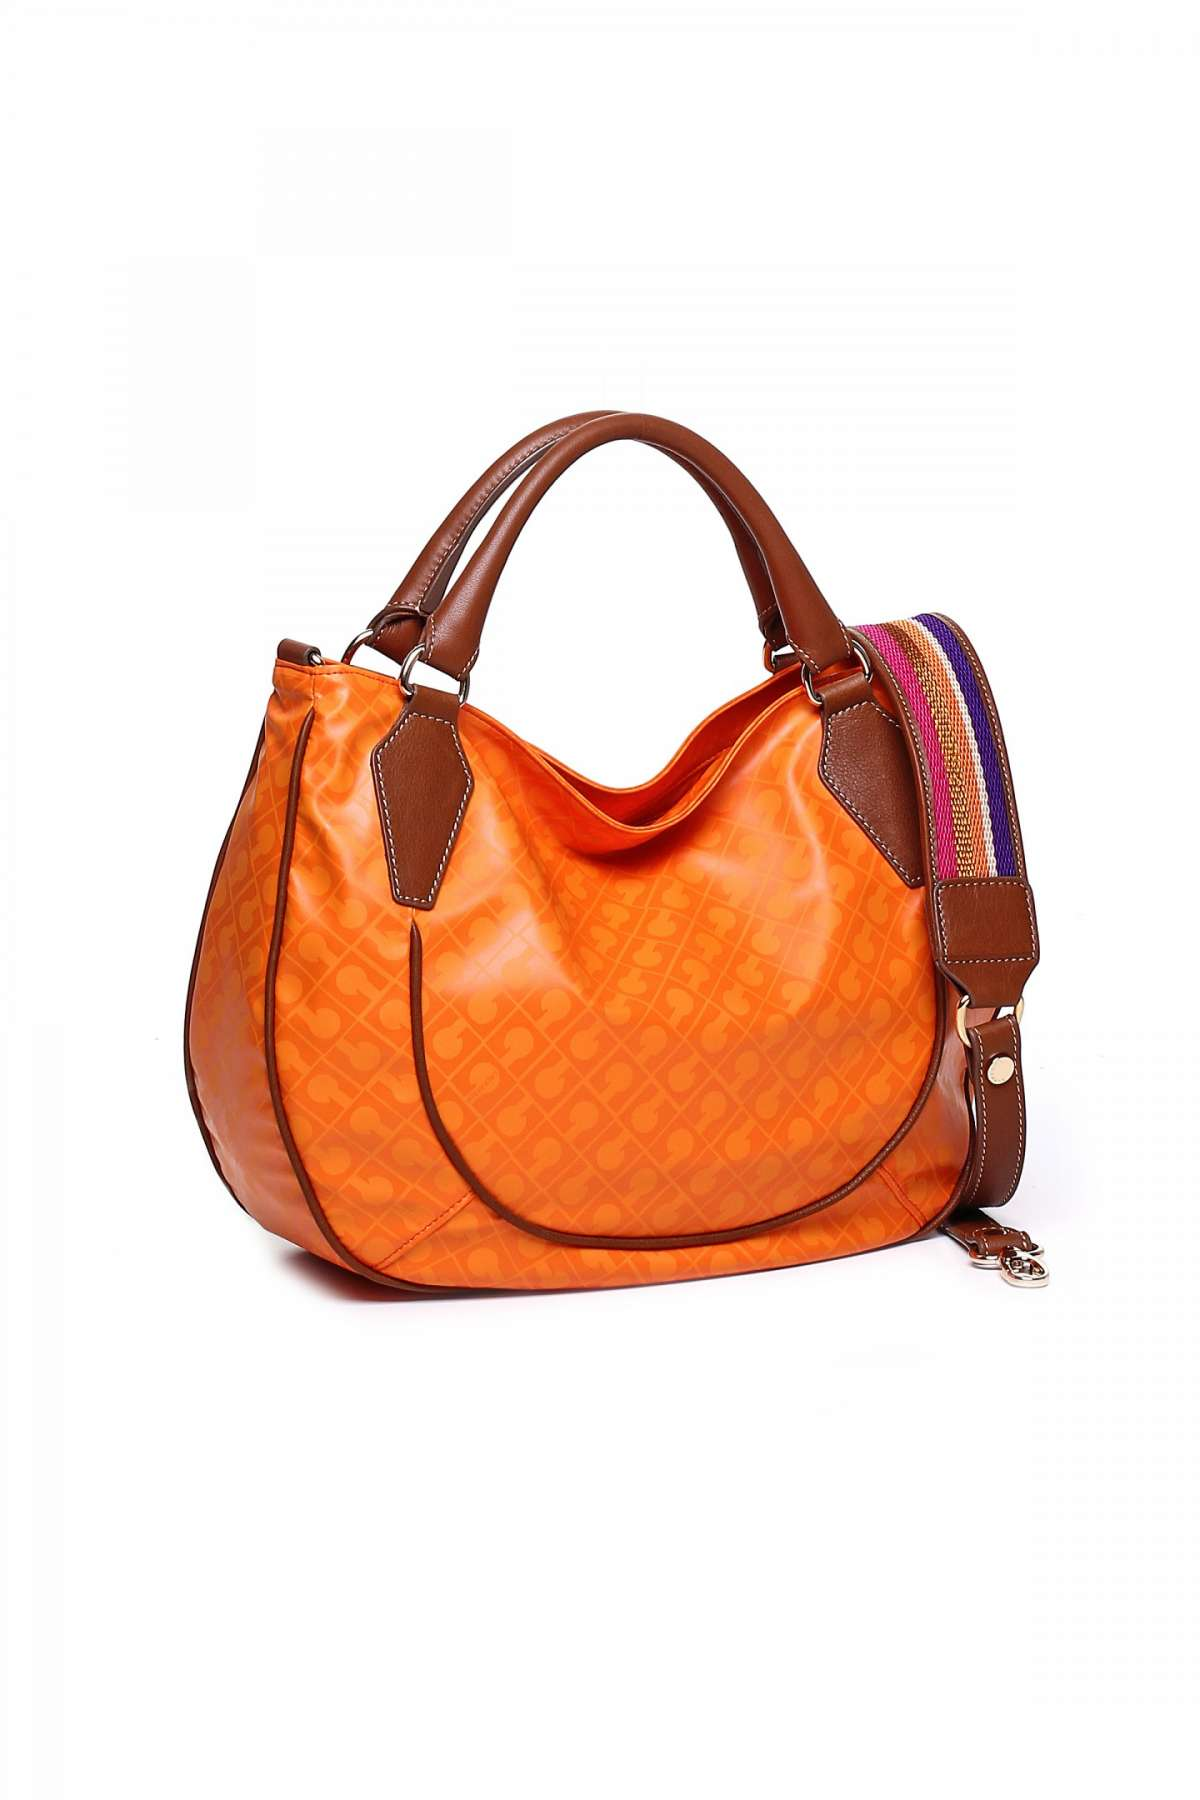 Handbag orange Gherardini